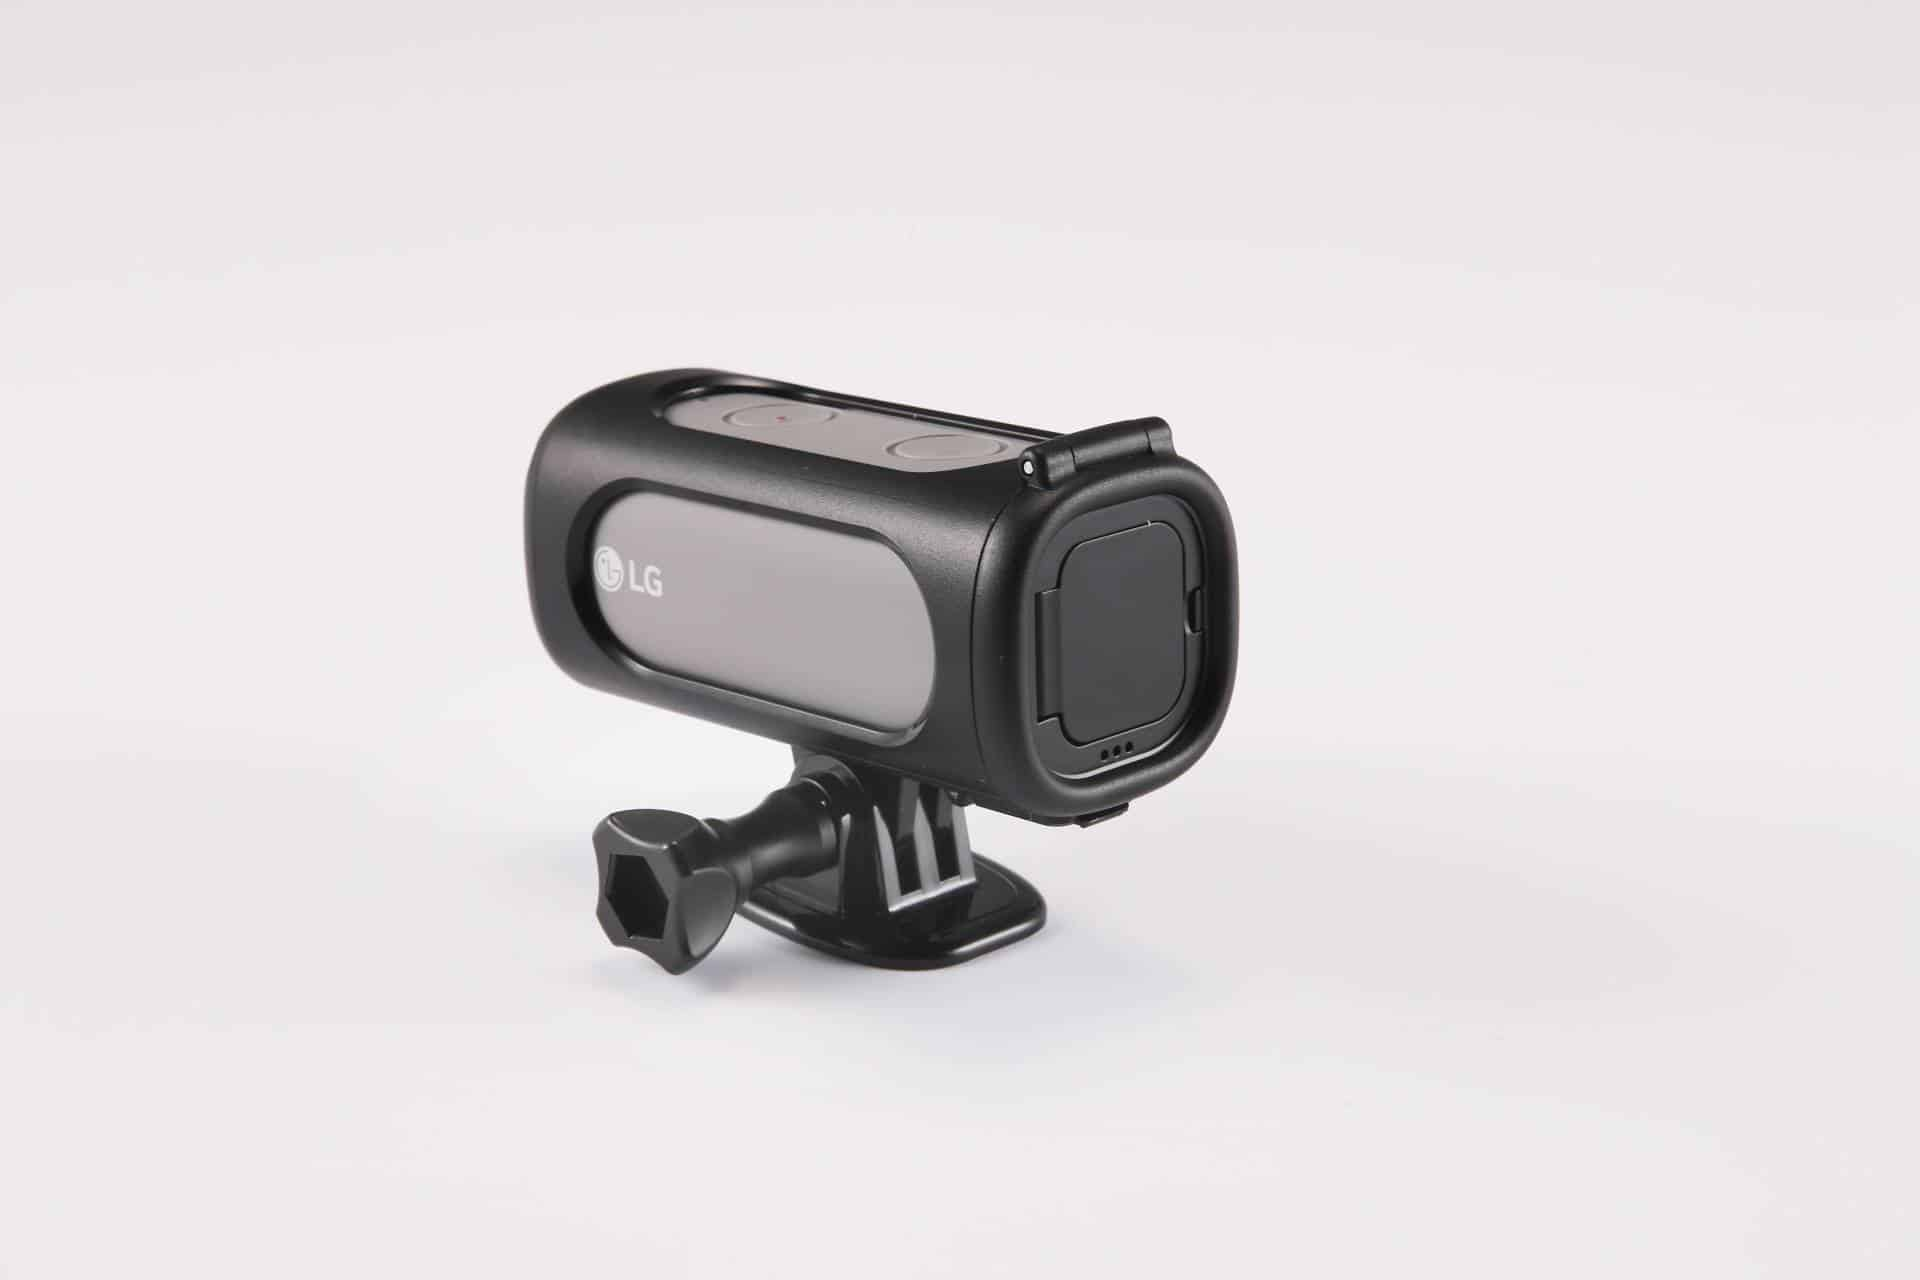 LG Action Cam 4